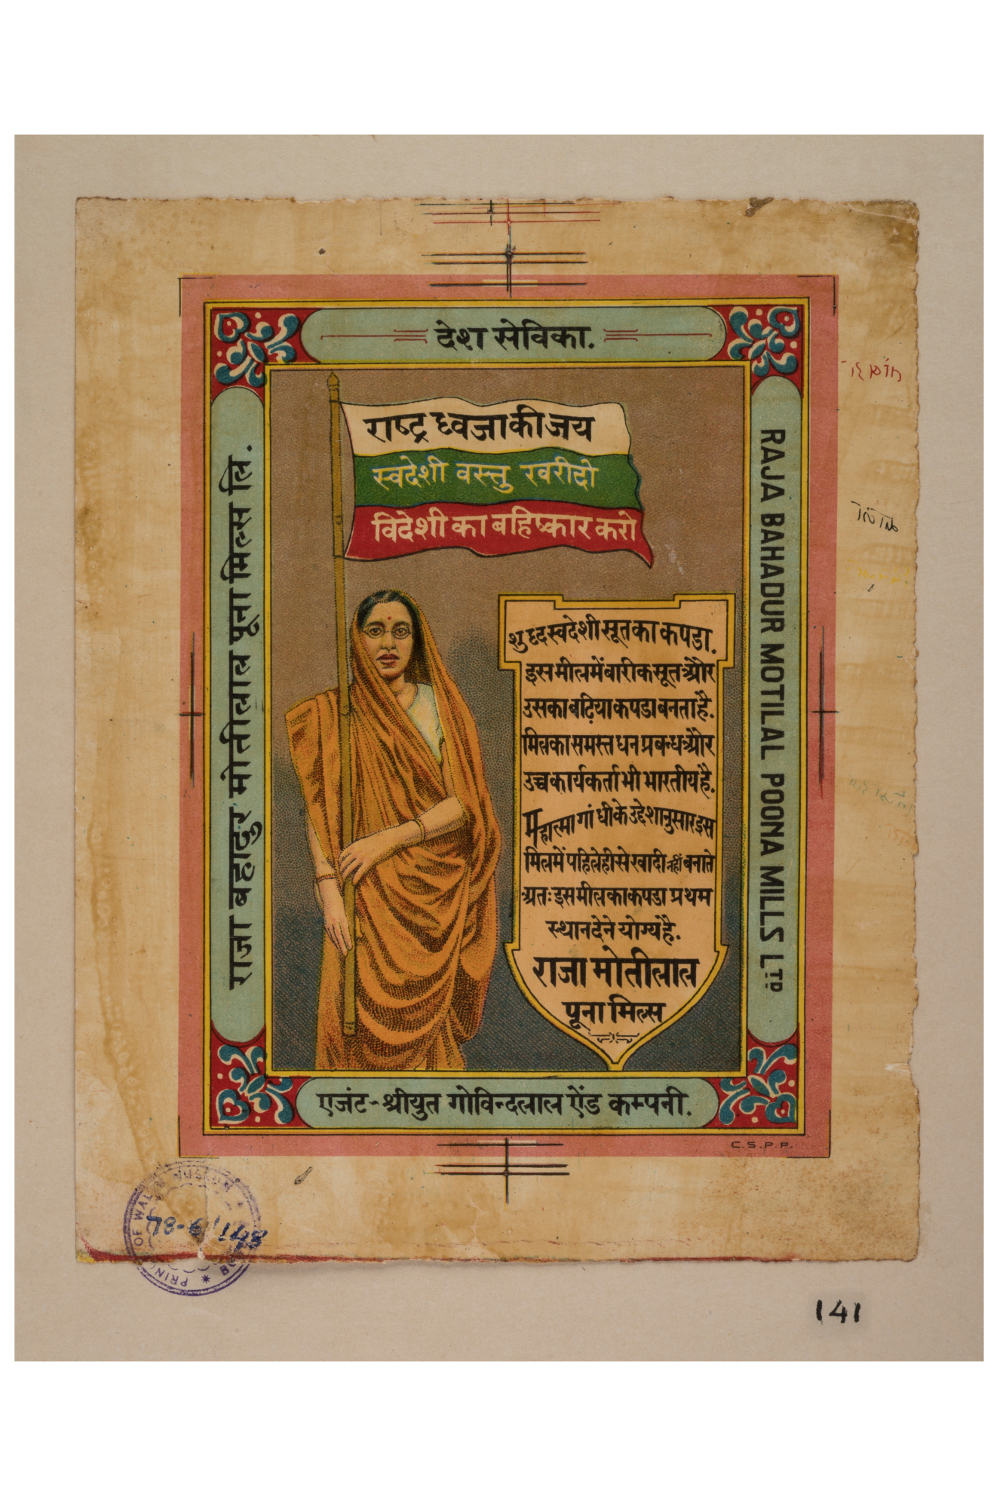 Desh Sevika - PaperEarly 20th centuryRaja Bahadur Motilal Poona Mills Ltd.CSMVS, Mumbai In the early twentieth century, hundreds of new textile mills began to emerge in India. This advertisement depicts a new Indian woman. She is politically minded and stands beside a label that states that 'the financier and owners of this mill are Indian…and that it operates as per Mahatma Gandhi's directive', clearly linking industrialisation with the project of nationalism.